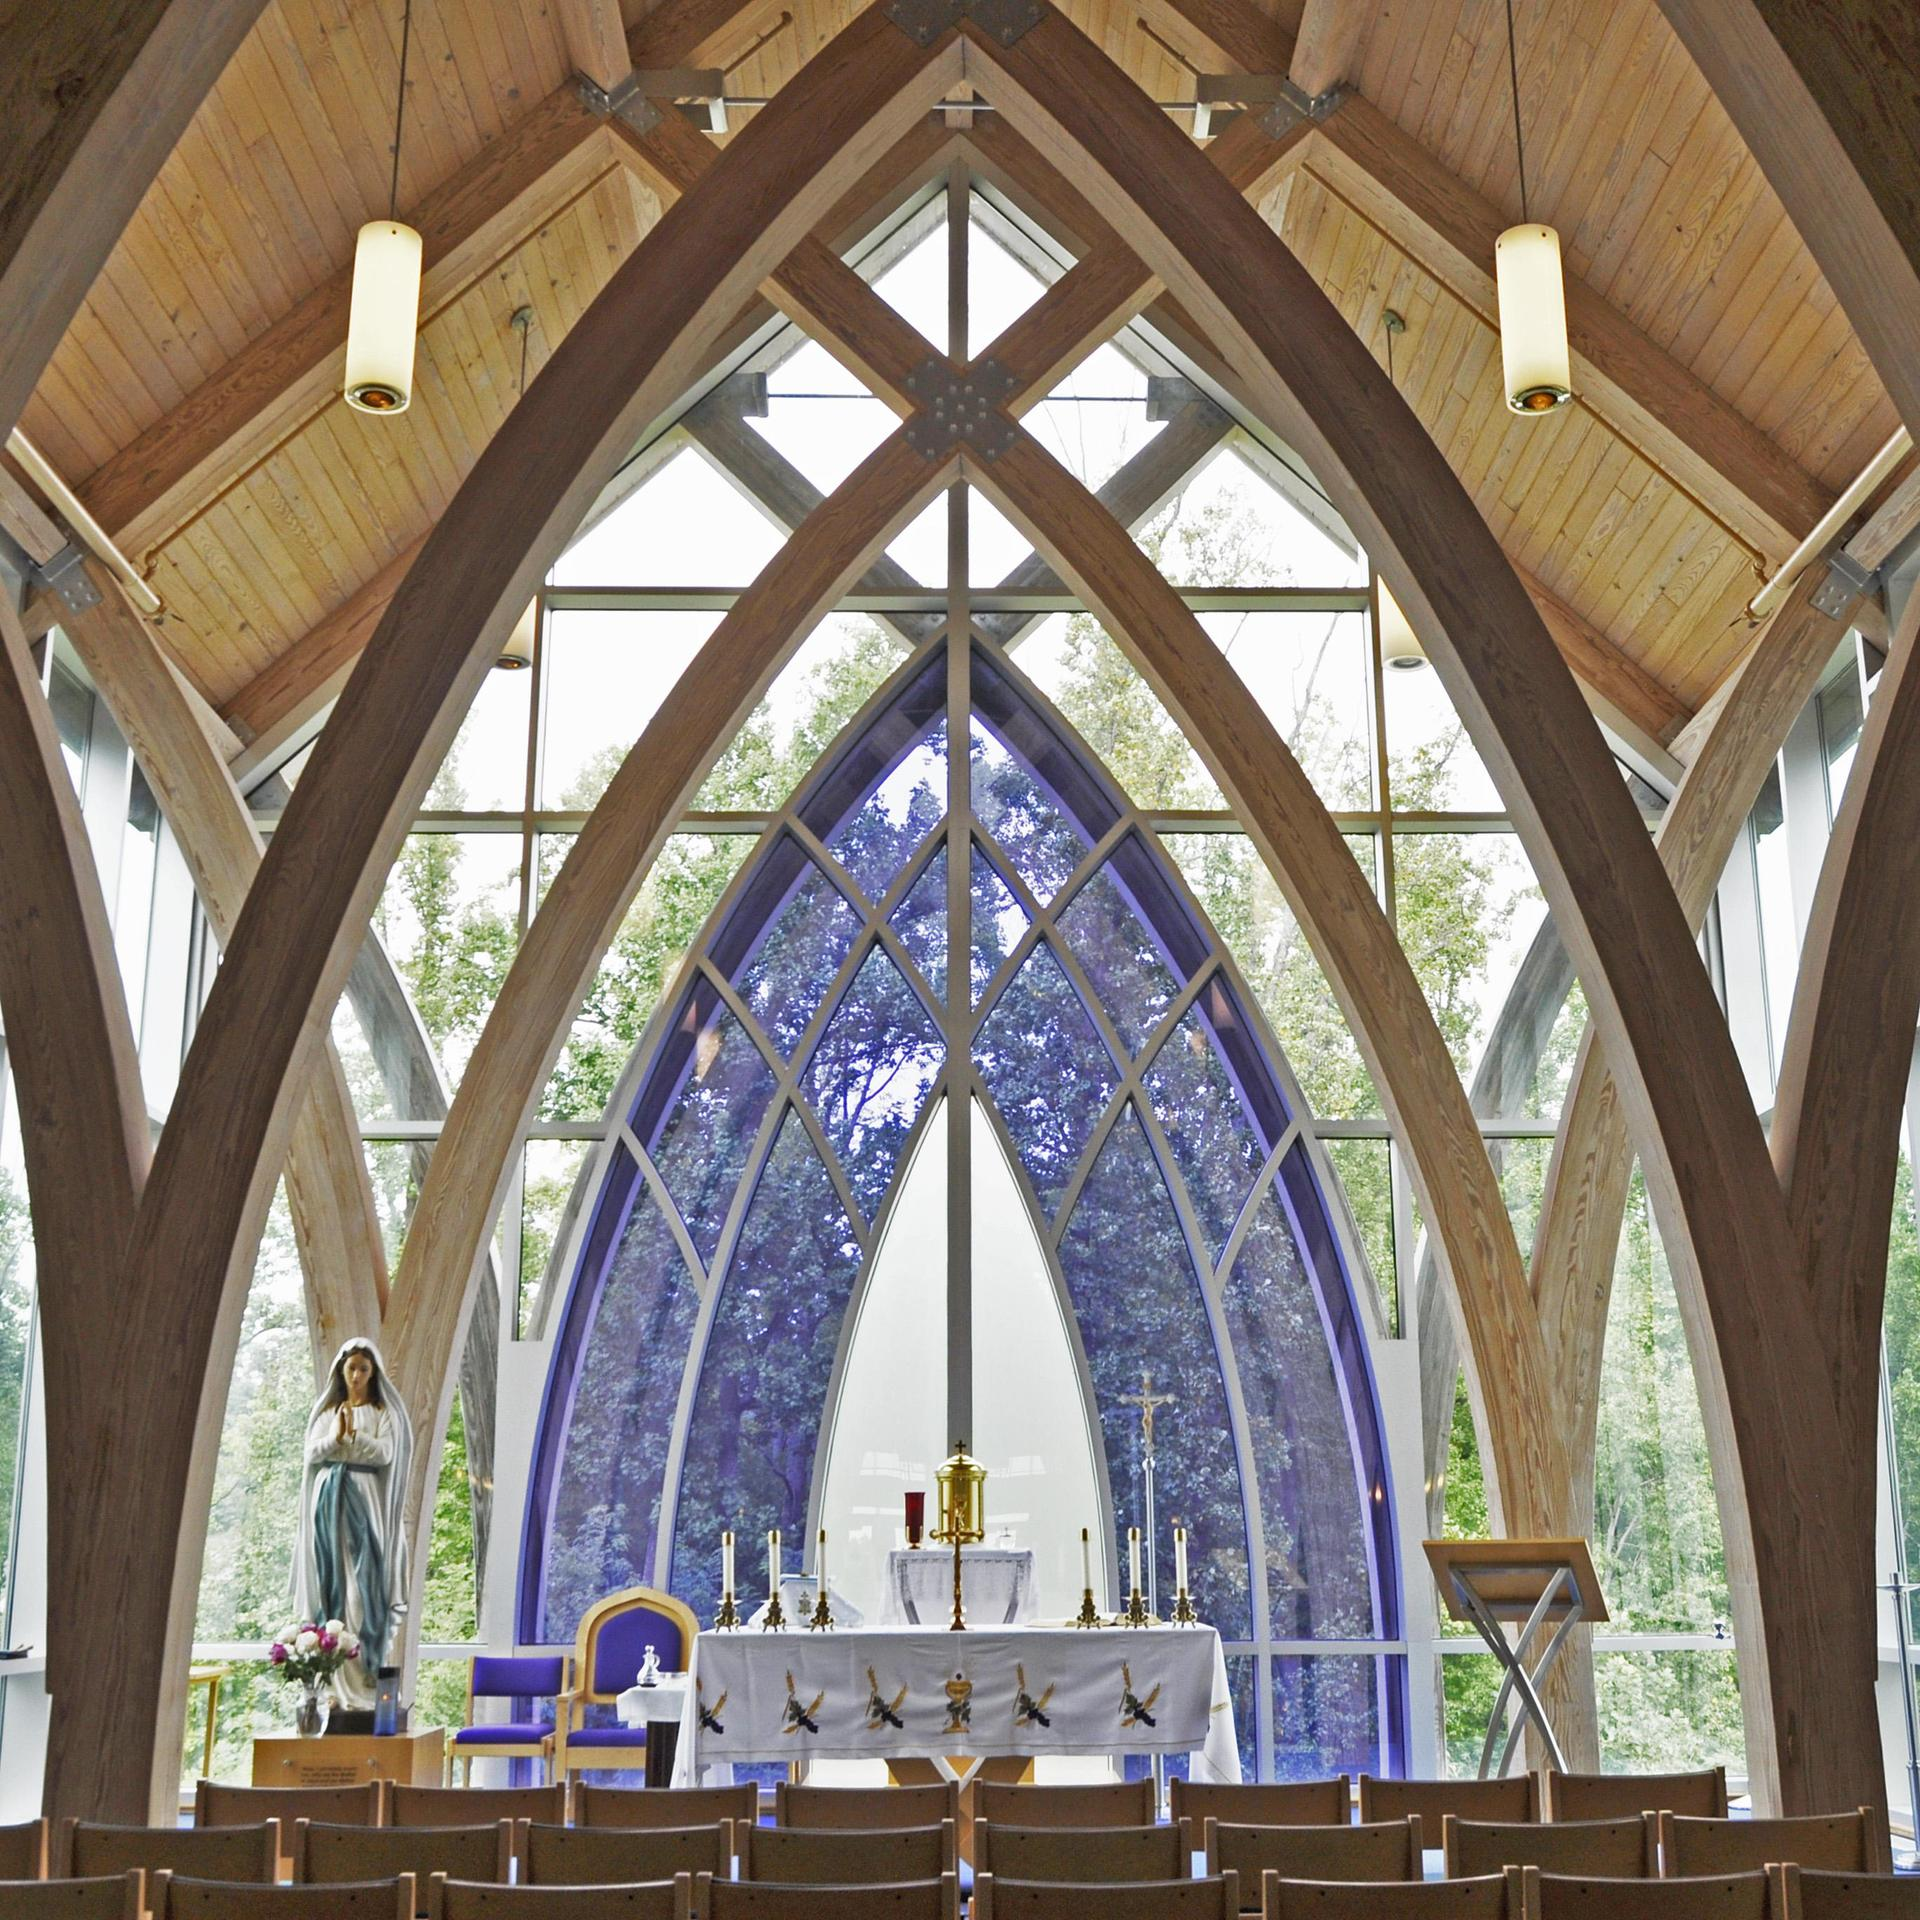 A view of the altar in the school chapel